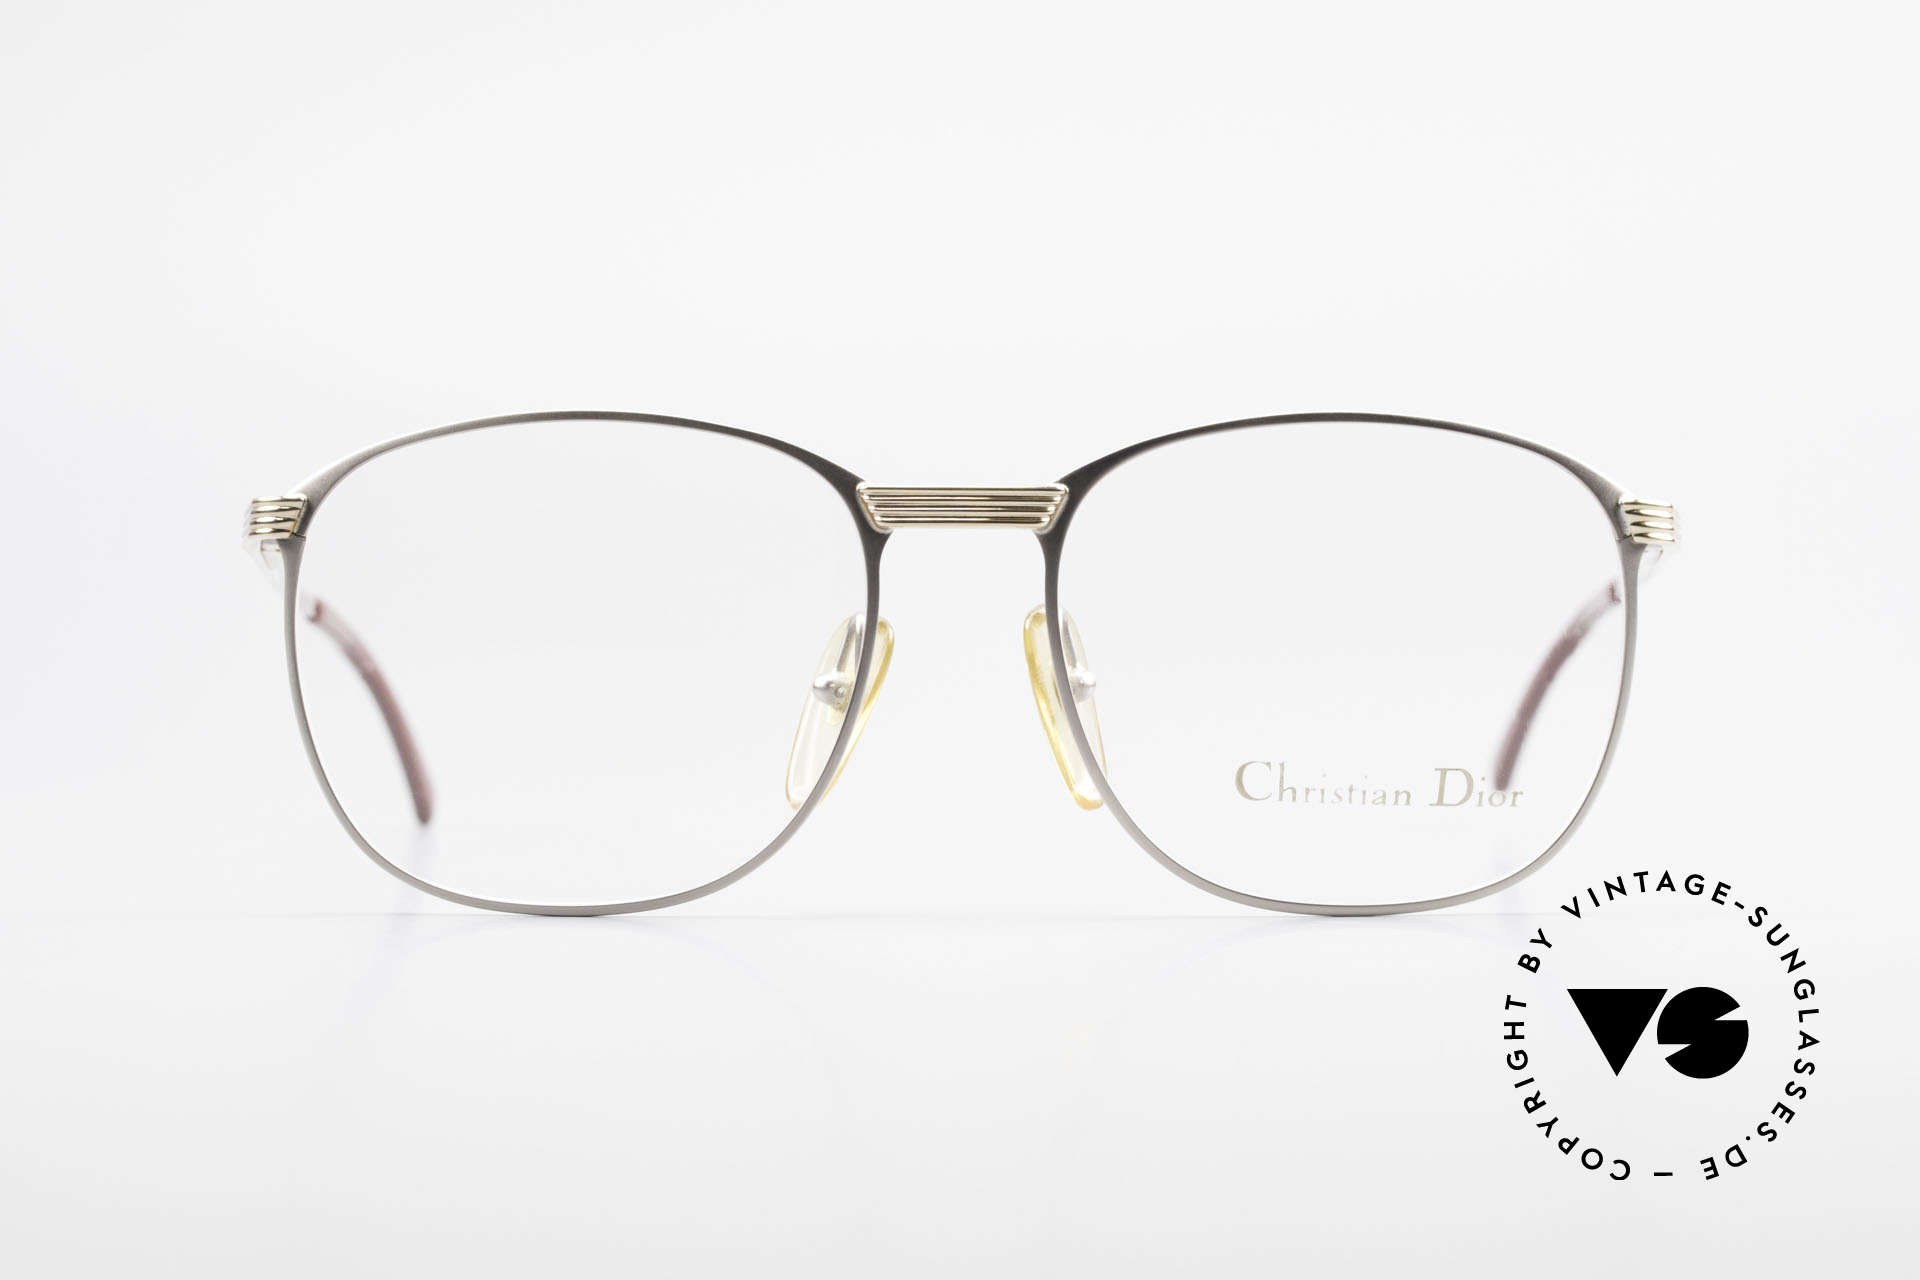 Christian Dior 2721 1980's Titanium Frame Men, very noble & unbelievable quality (U must feel this!), Made for Men